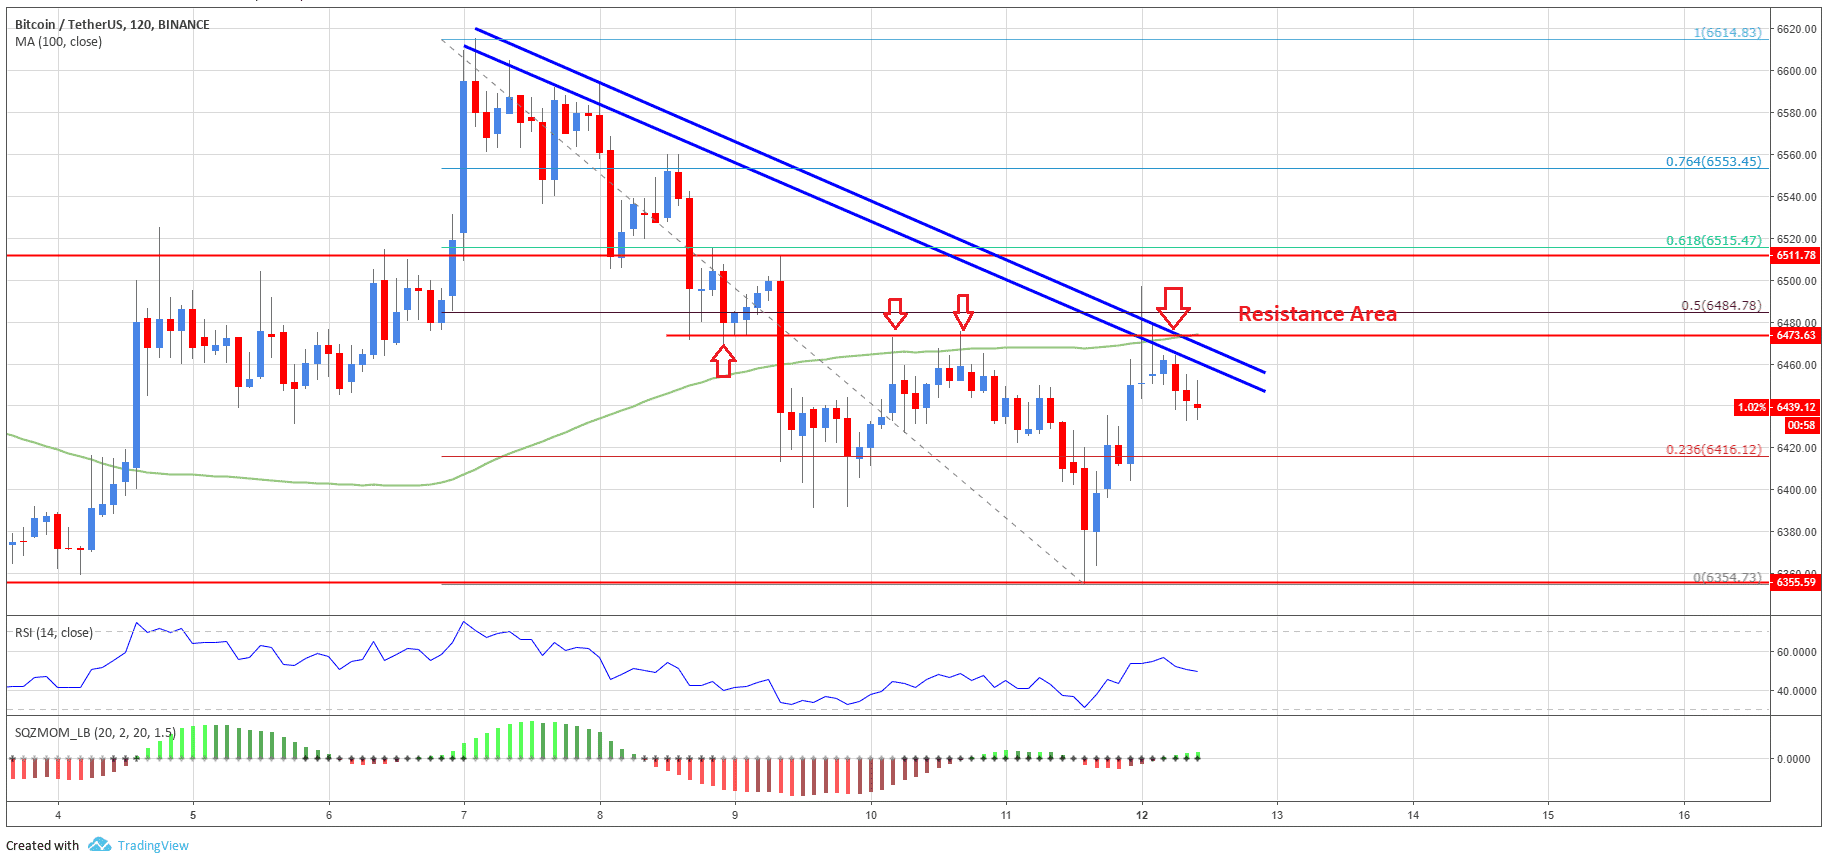 Bitcoin Price Analysis: BTC/USD Recovery Faces Significant Hurdle